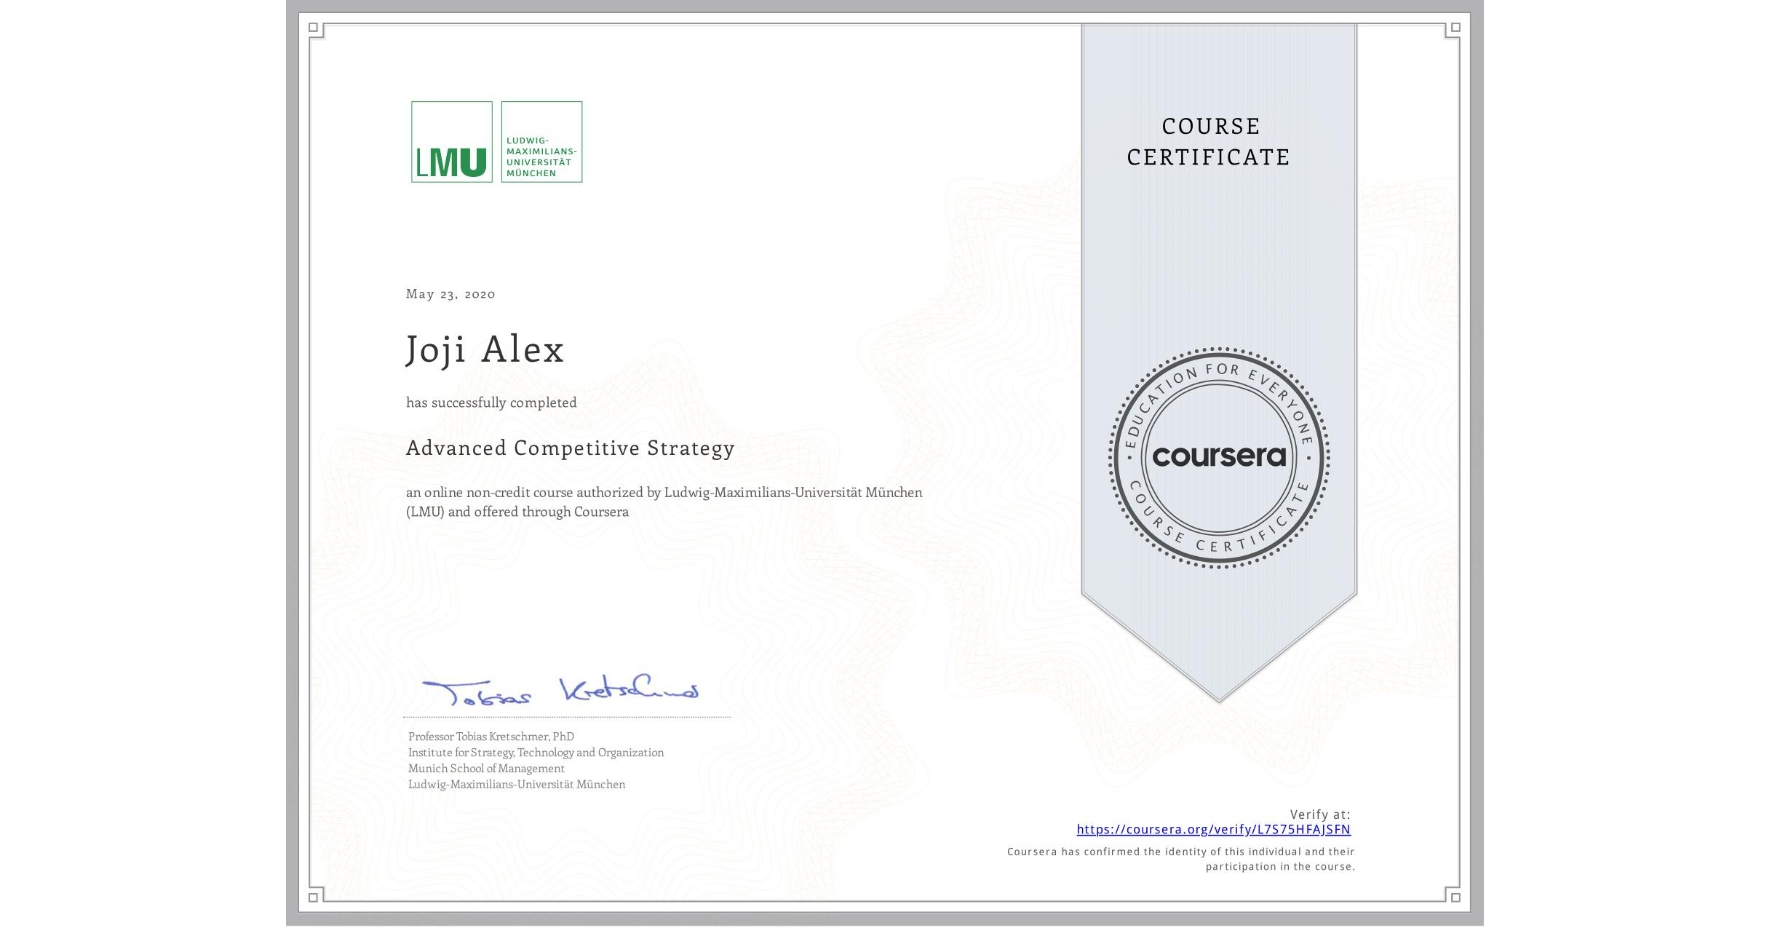 View certificate for Joji Alex, Advanced Competitive Strategy, an online non-credit course authorized by Ludwig-Maximilians-Universität München (LMU) and offered through Coursera